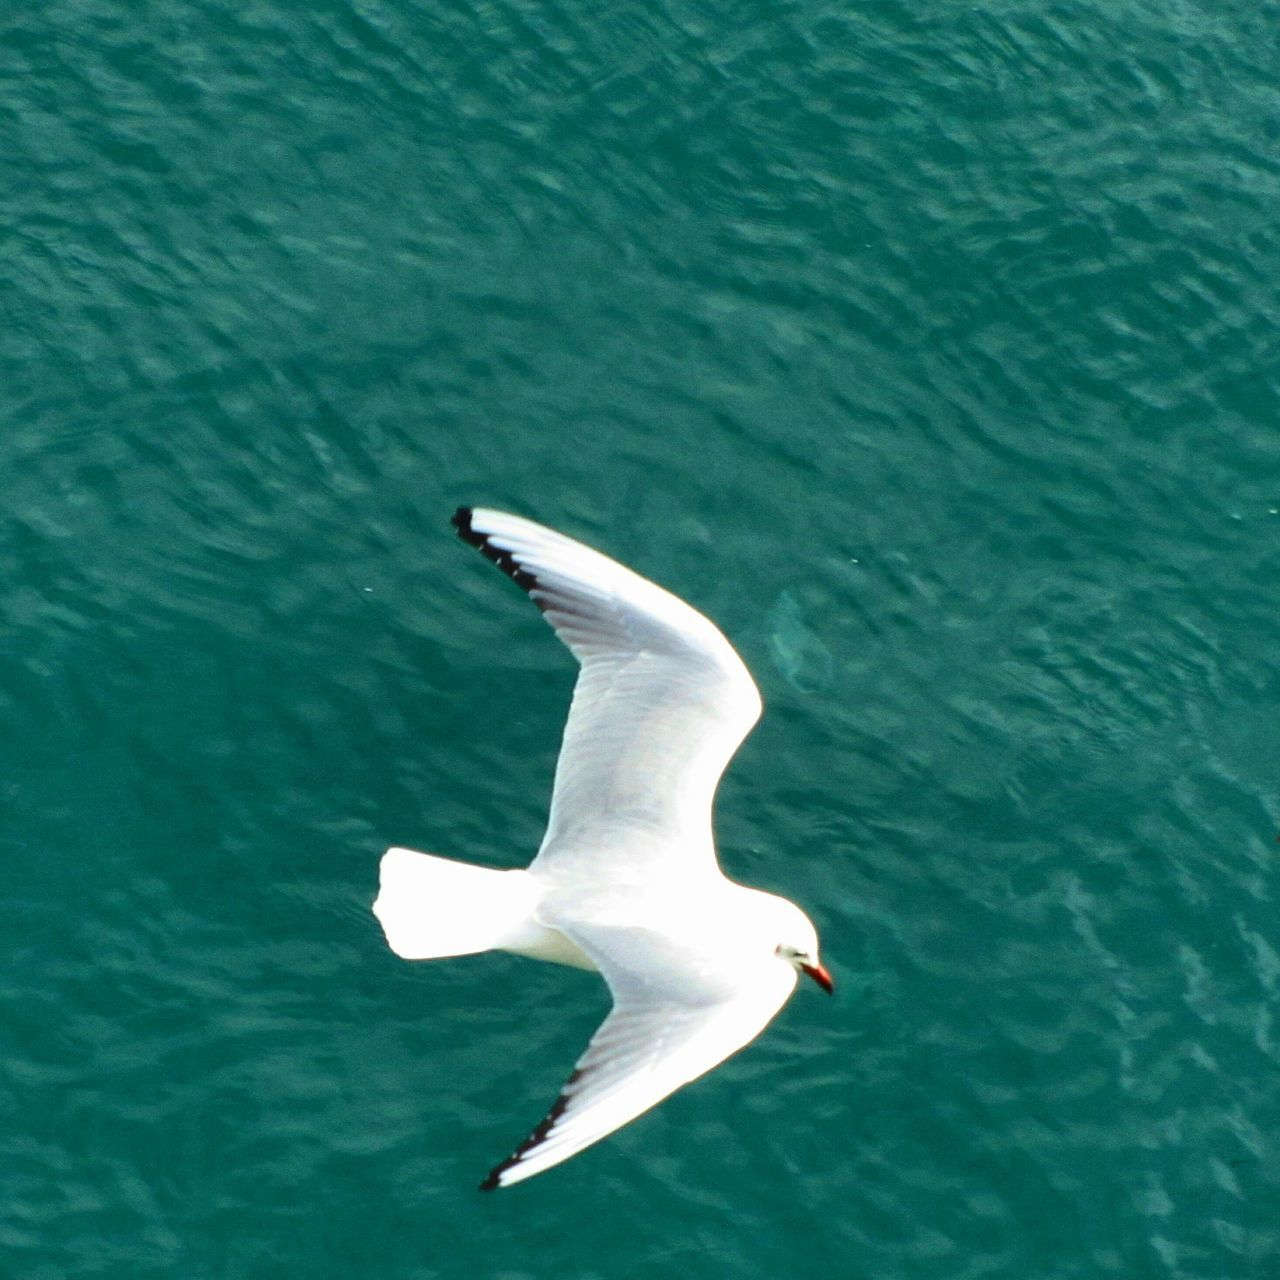 Seagull Flying Over Sea